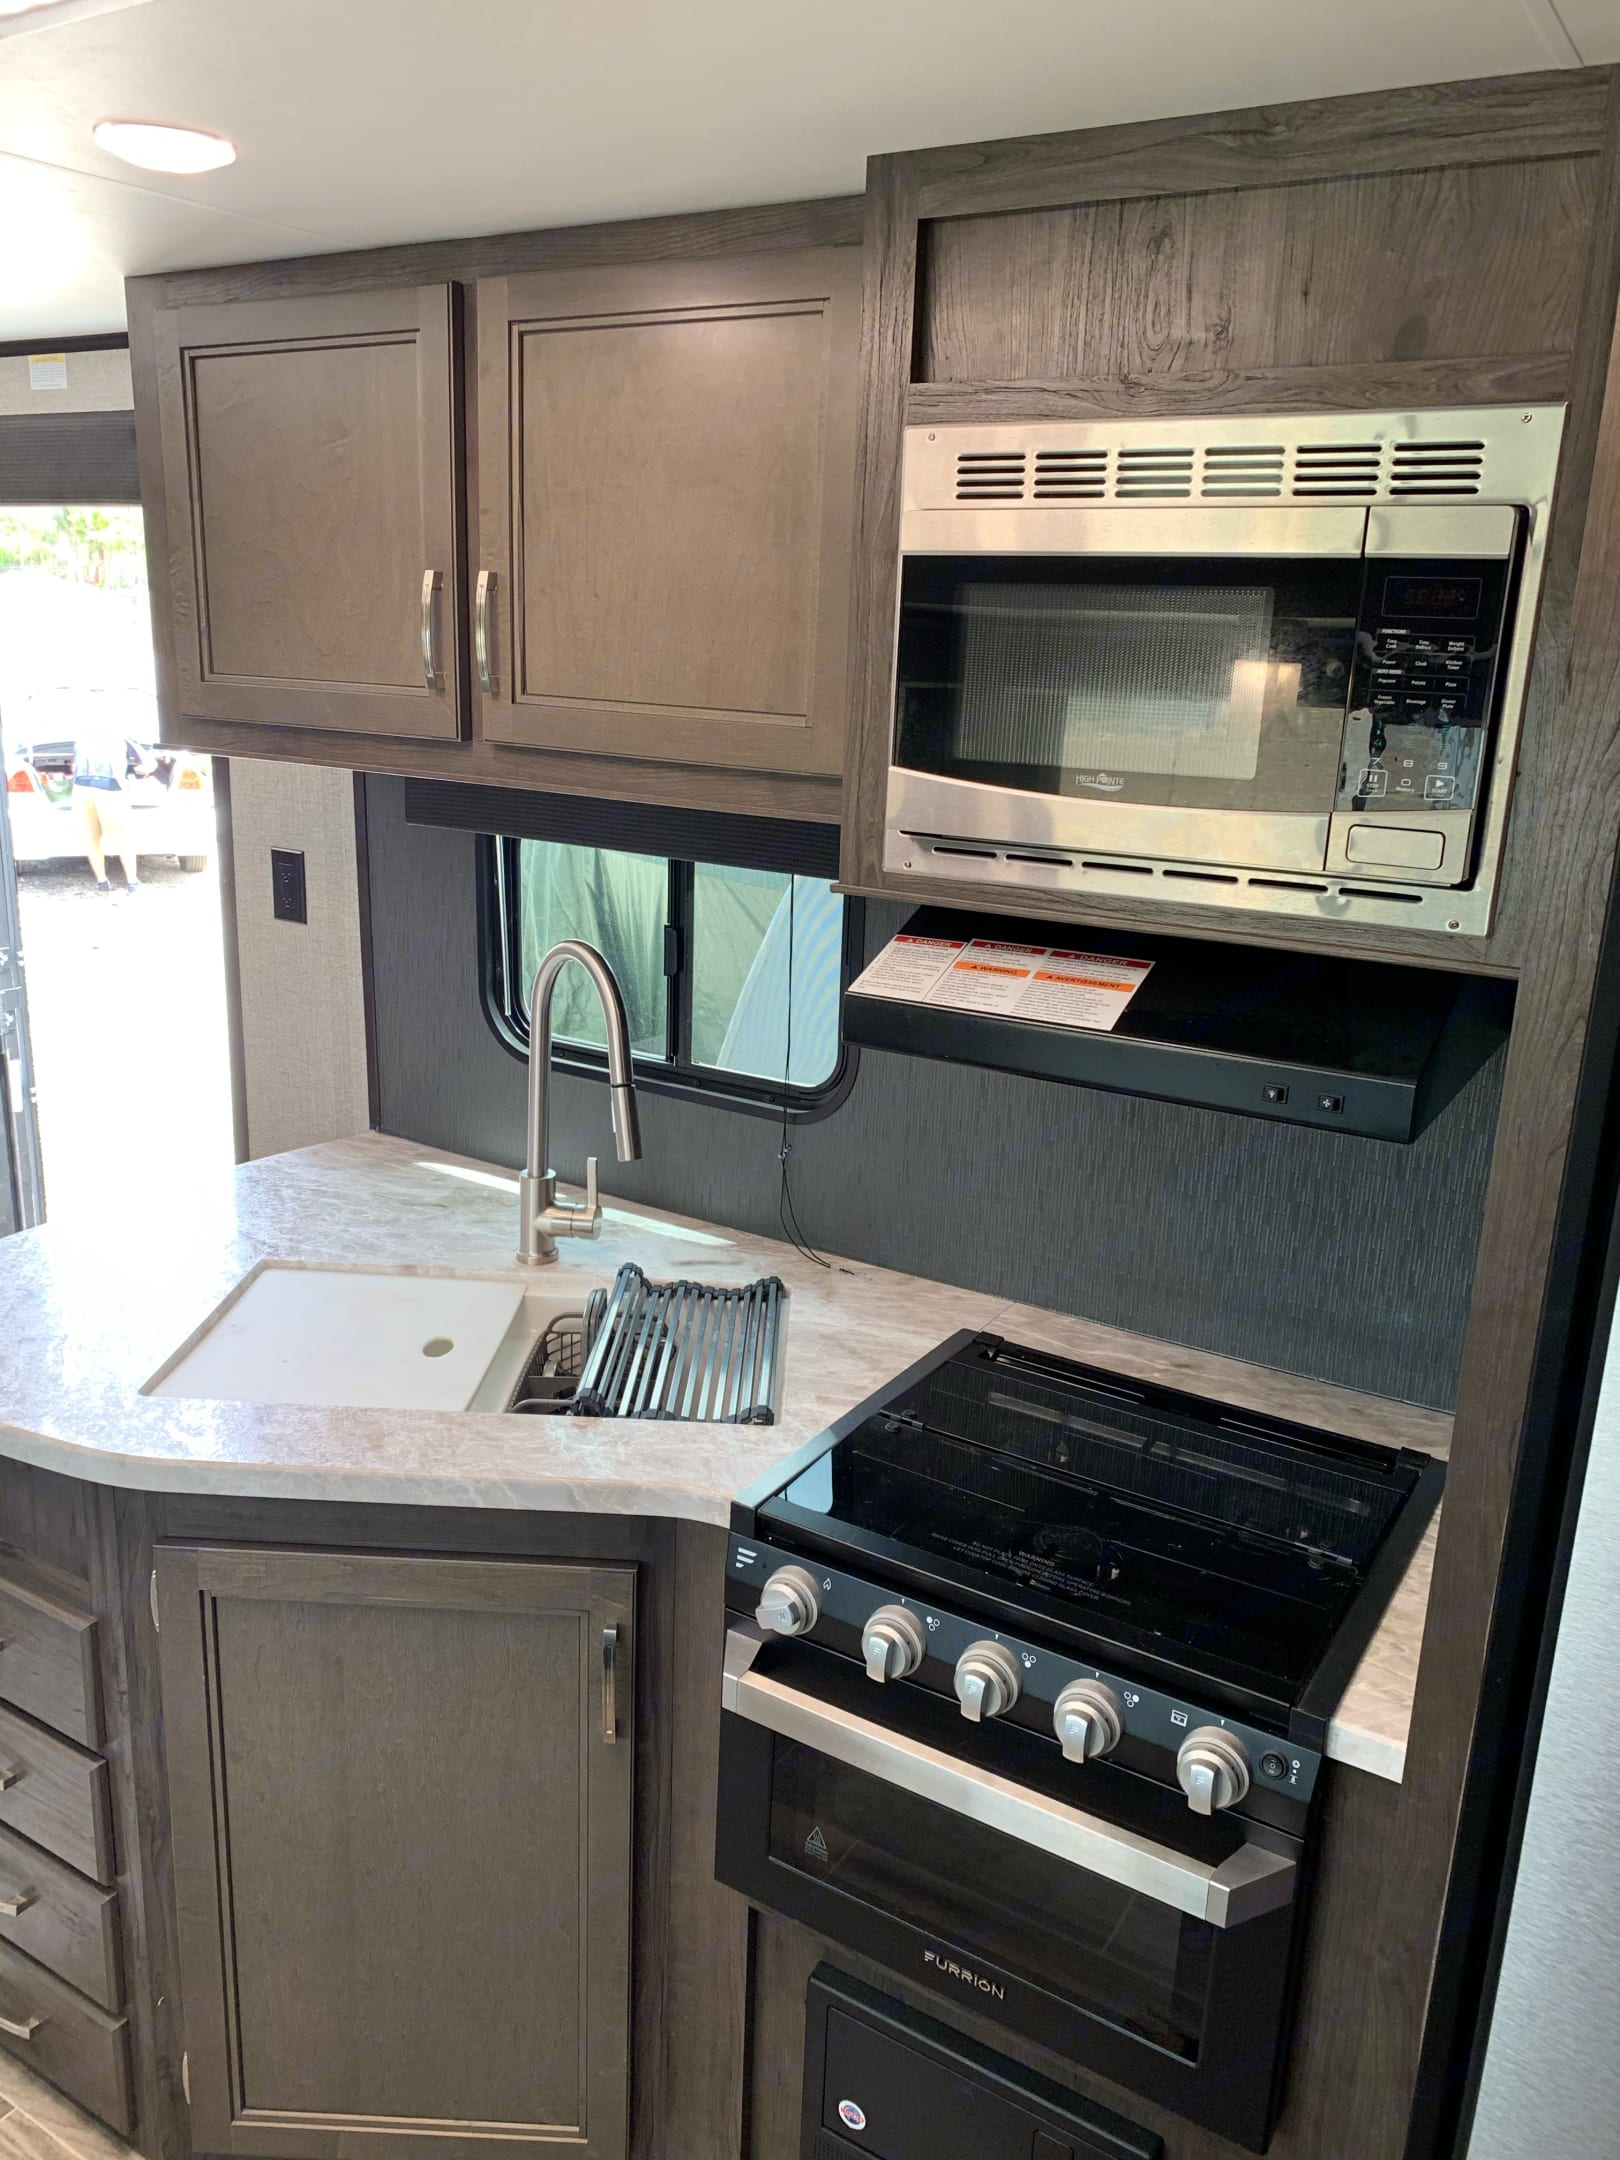 Clean and modern kitchen with nice appliances!. Jayco Jay Feather 2020